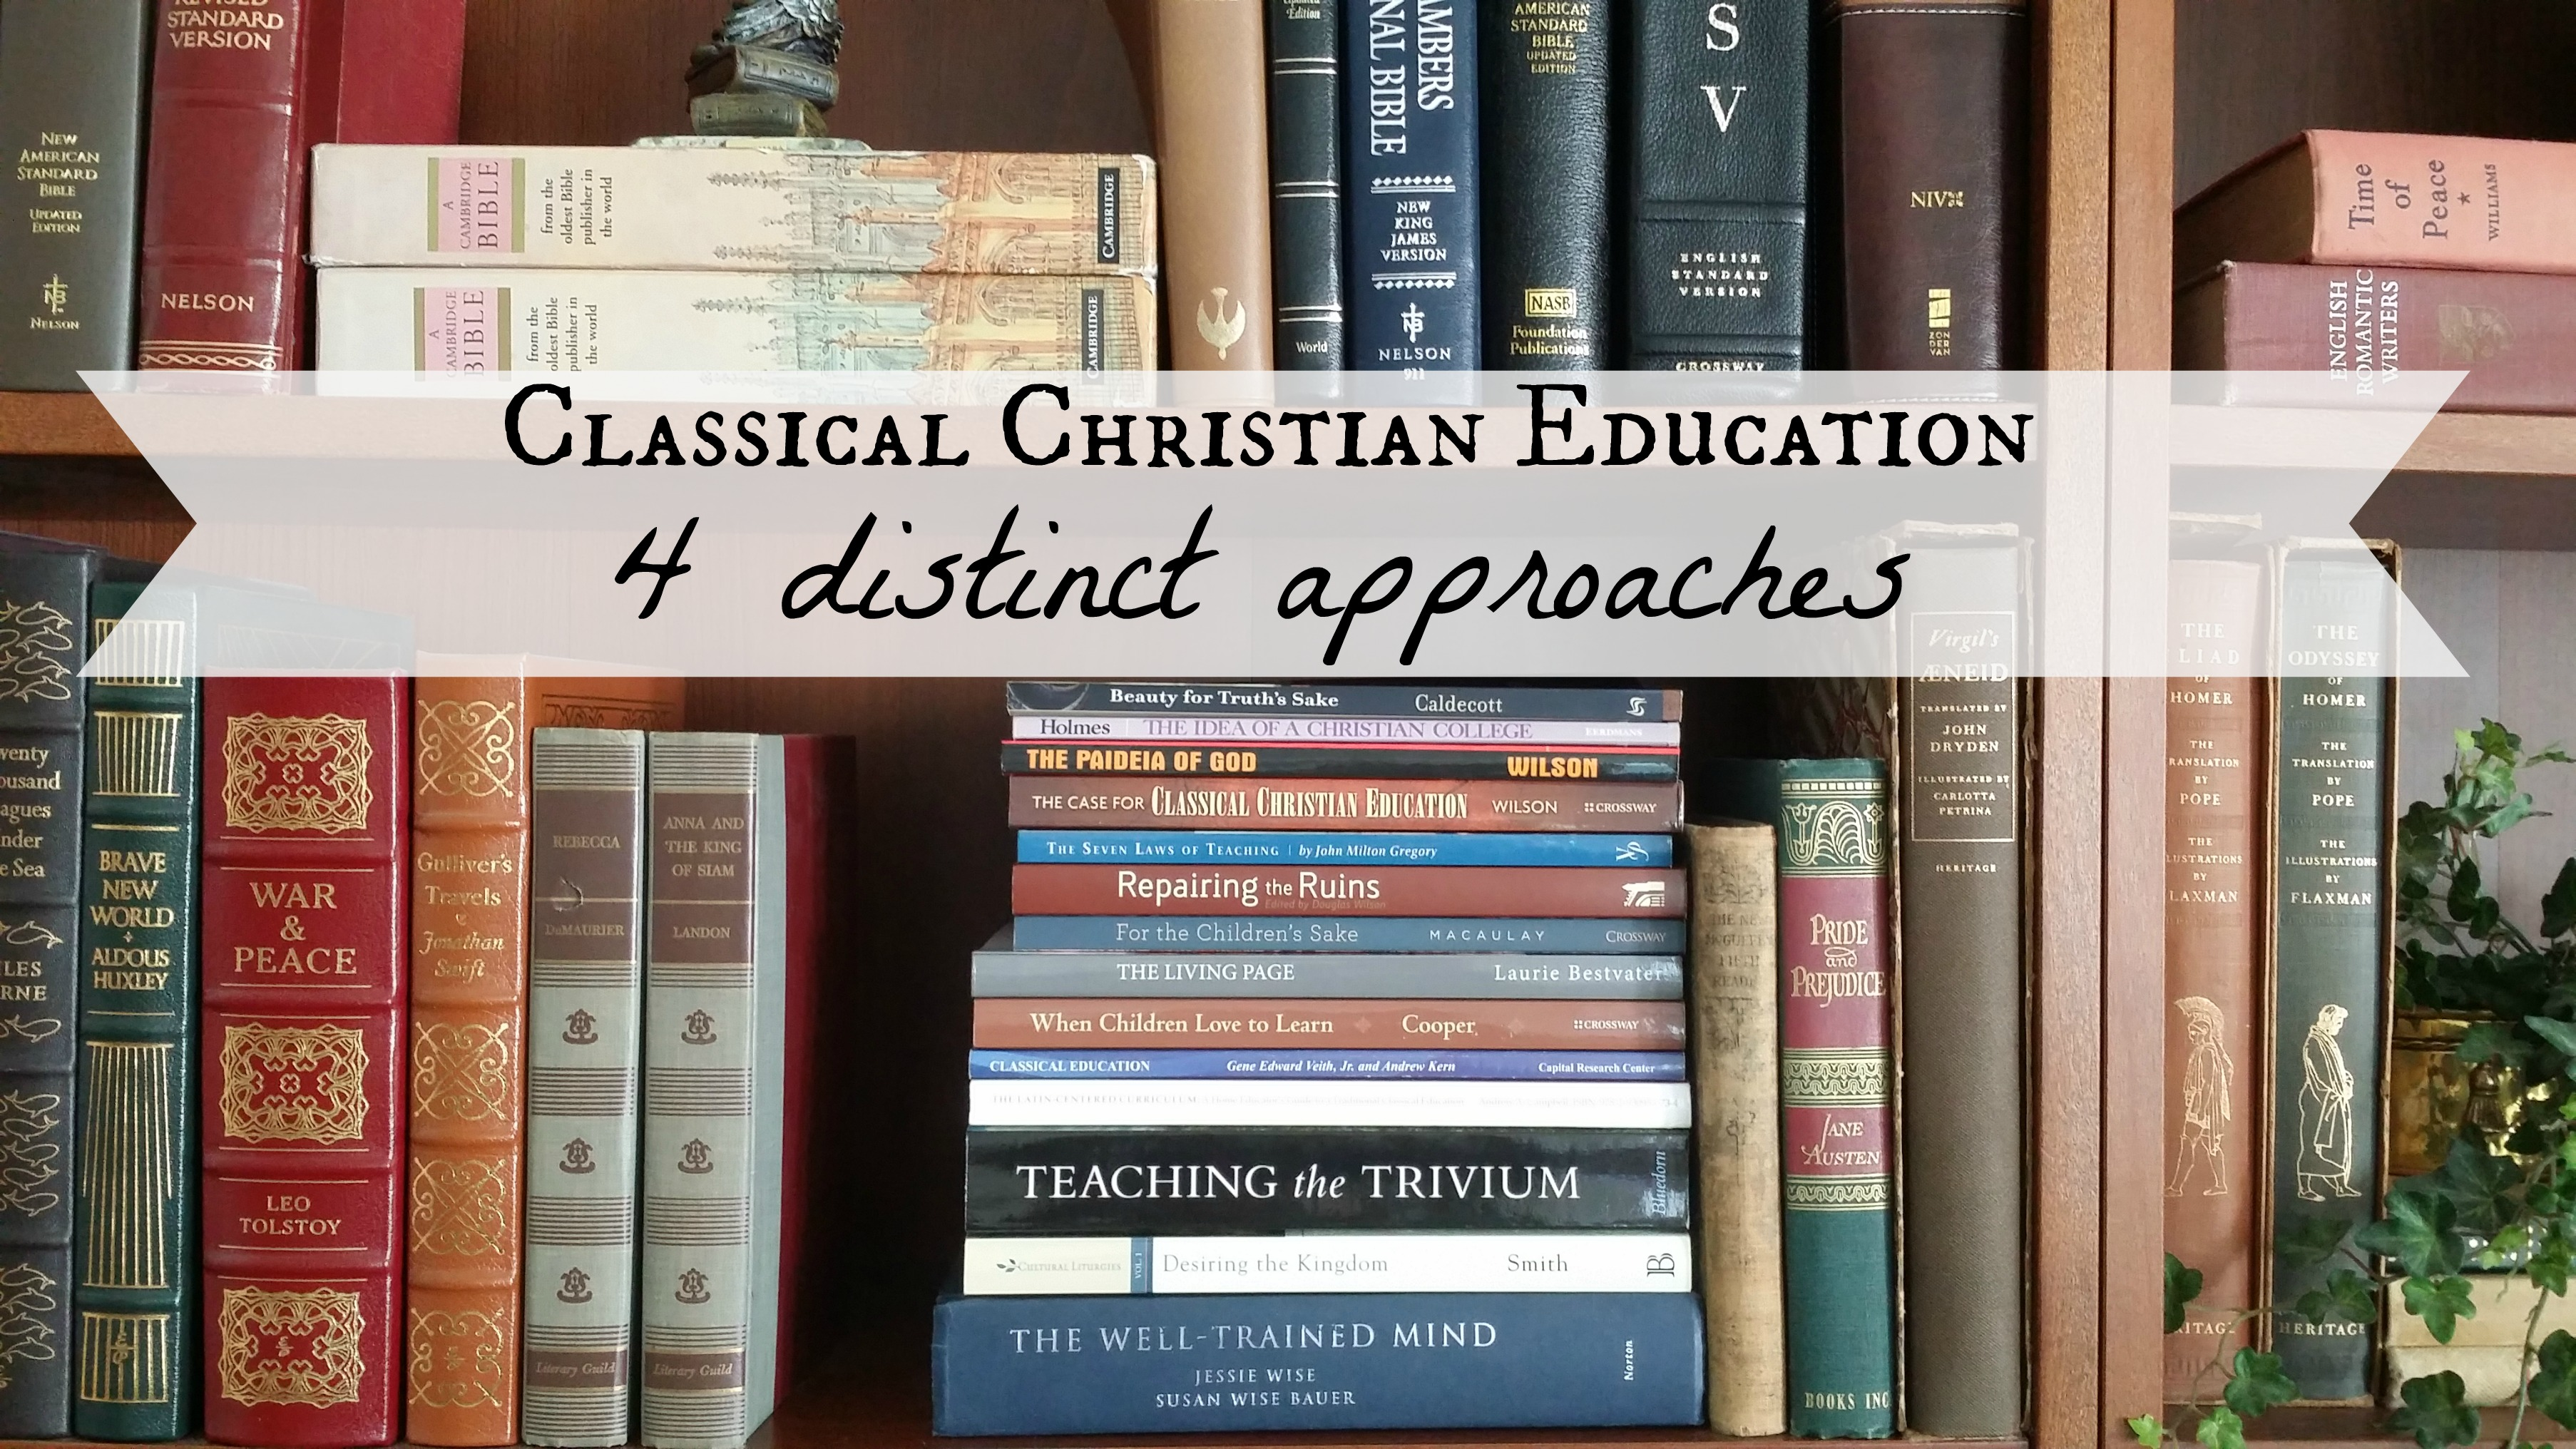 Classical Christian Education: Four Distinct Approaches, part 1